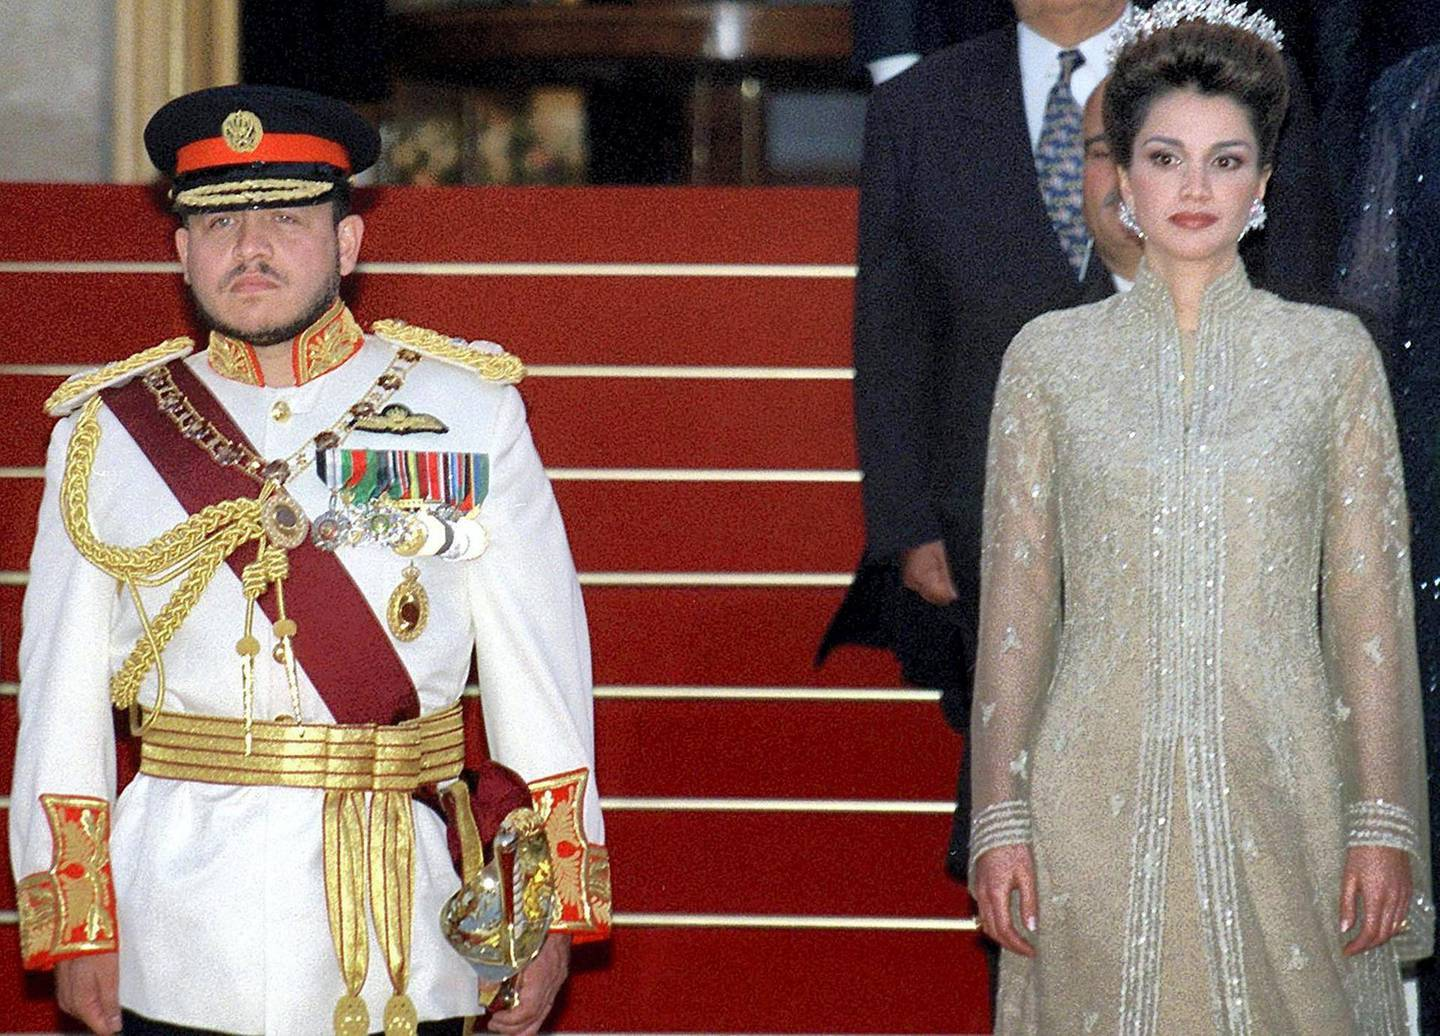 Jordan's King Abdullah II and his wife Queen Rania arrive at a reception to mark his formal ascension to the throne, at Raghadan palace in Amman 09 June 1999. Abdullah became king after the death of his father, King Hussein, 07 February 1999. (Photo by JAMAL NASRALLAH / AFP)